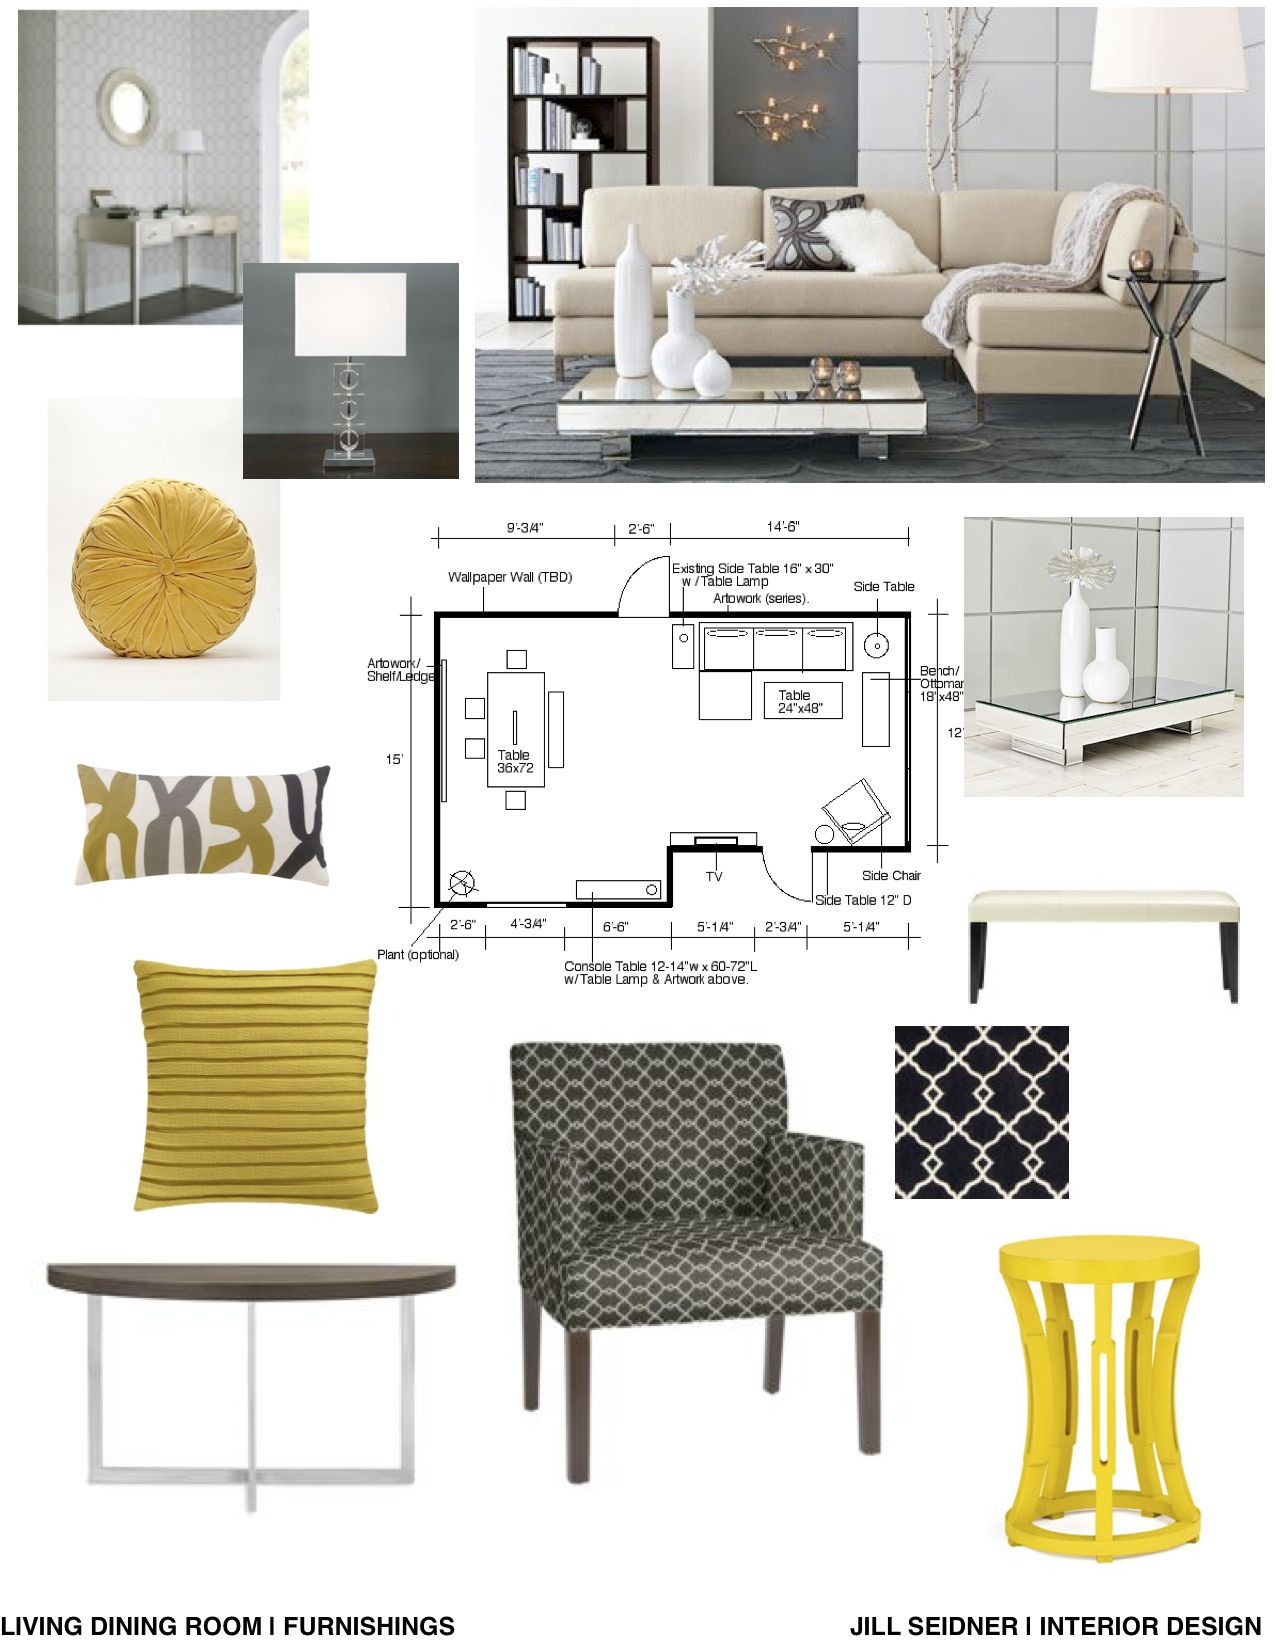 Concept board for an apartment living and dining room